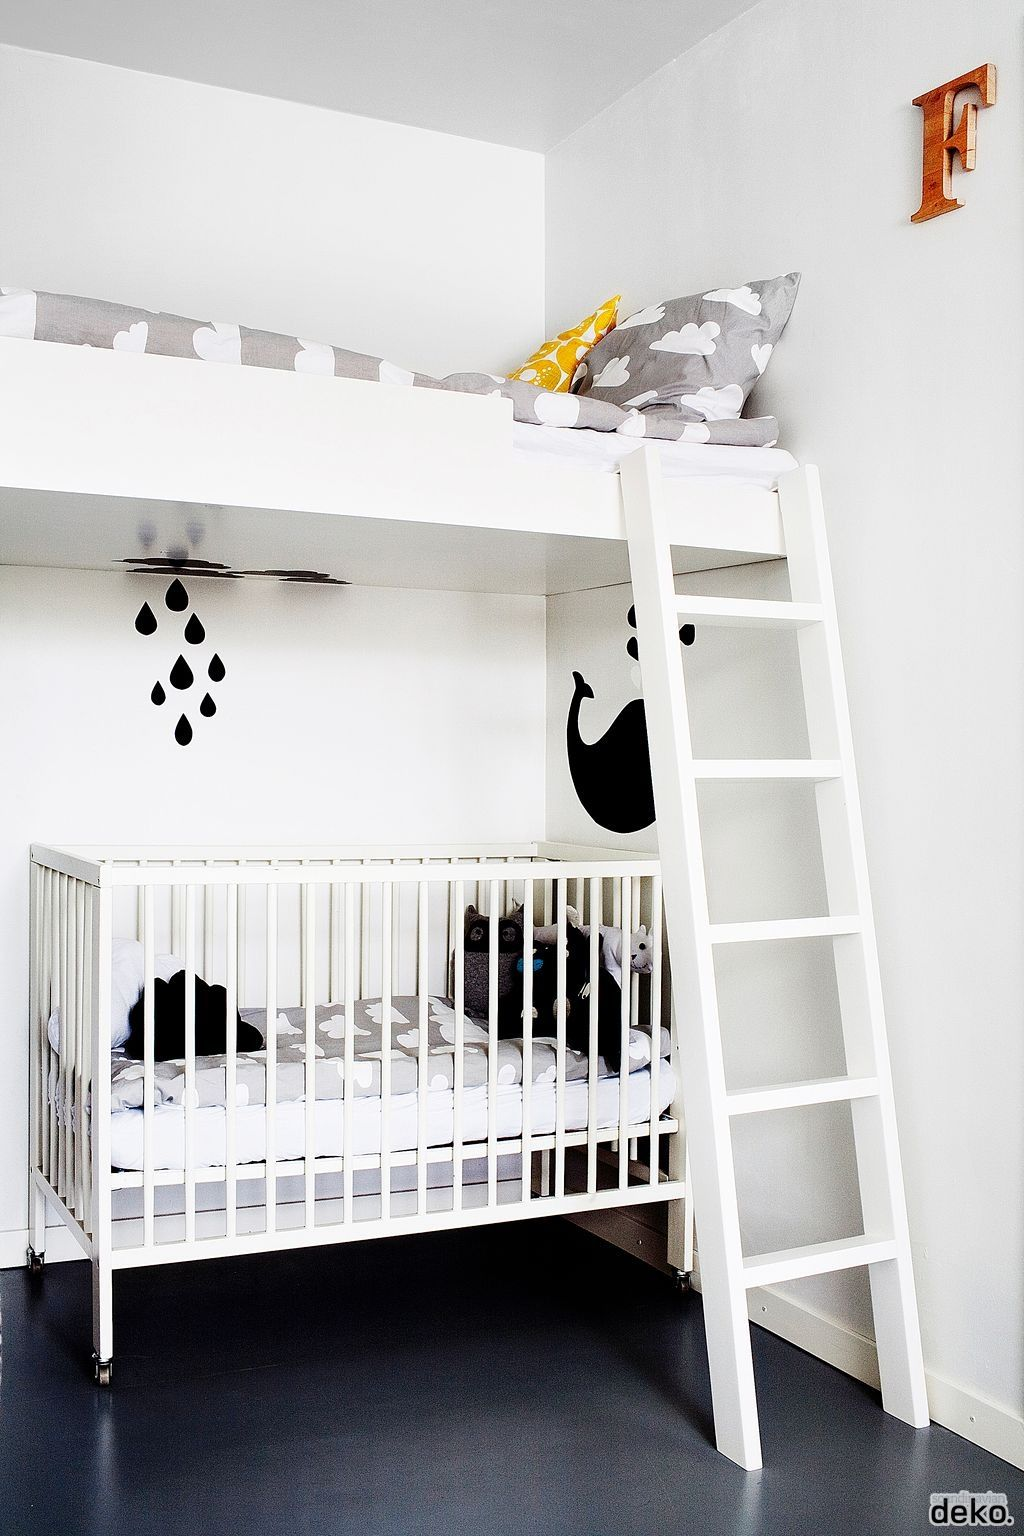 Loft Bed For Small Bedroom Loft Bed With Crib Underneath This Is What We Have To Do Room